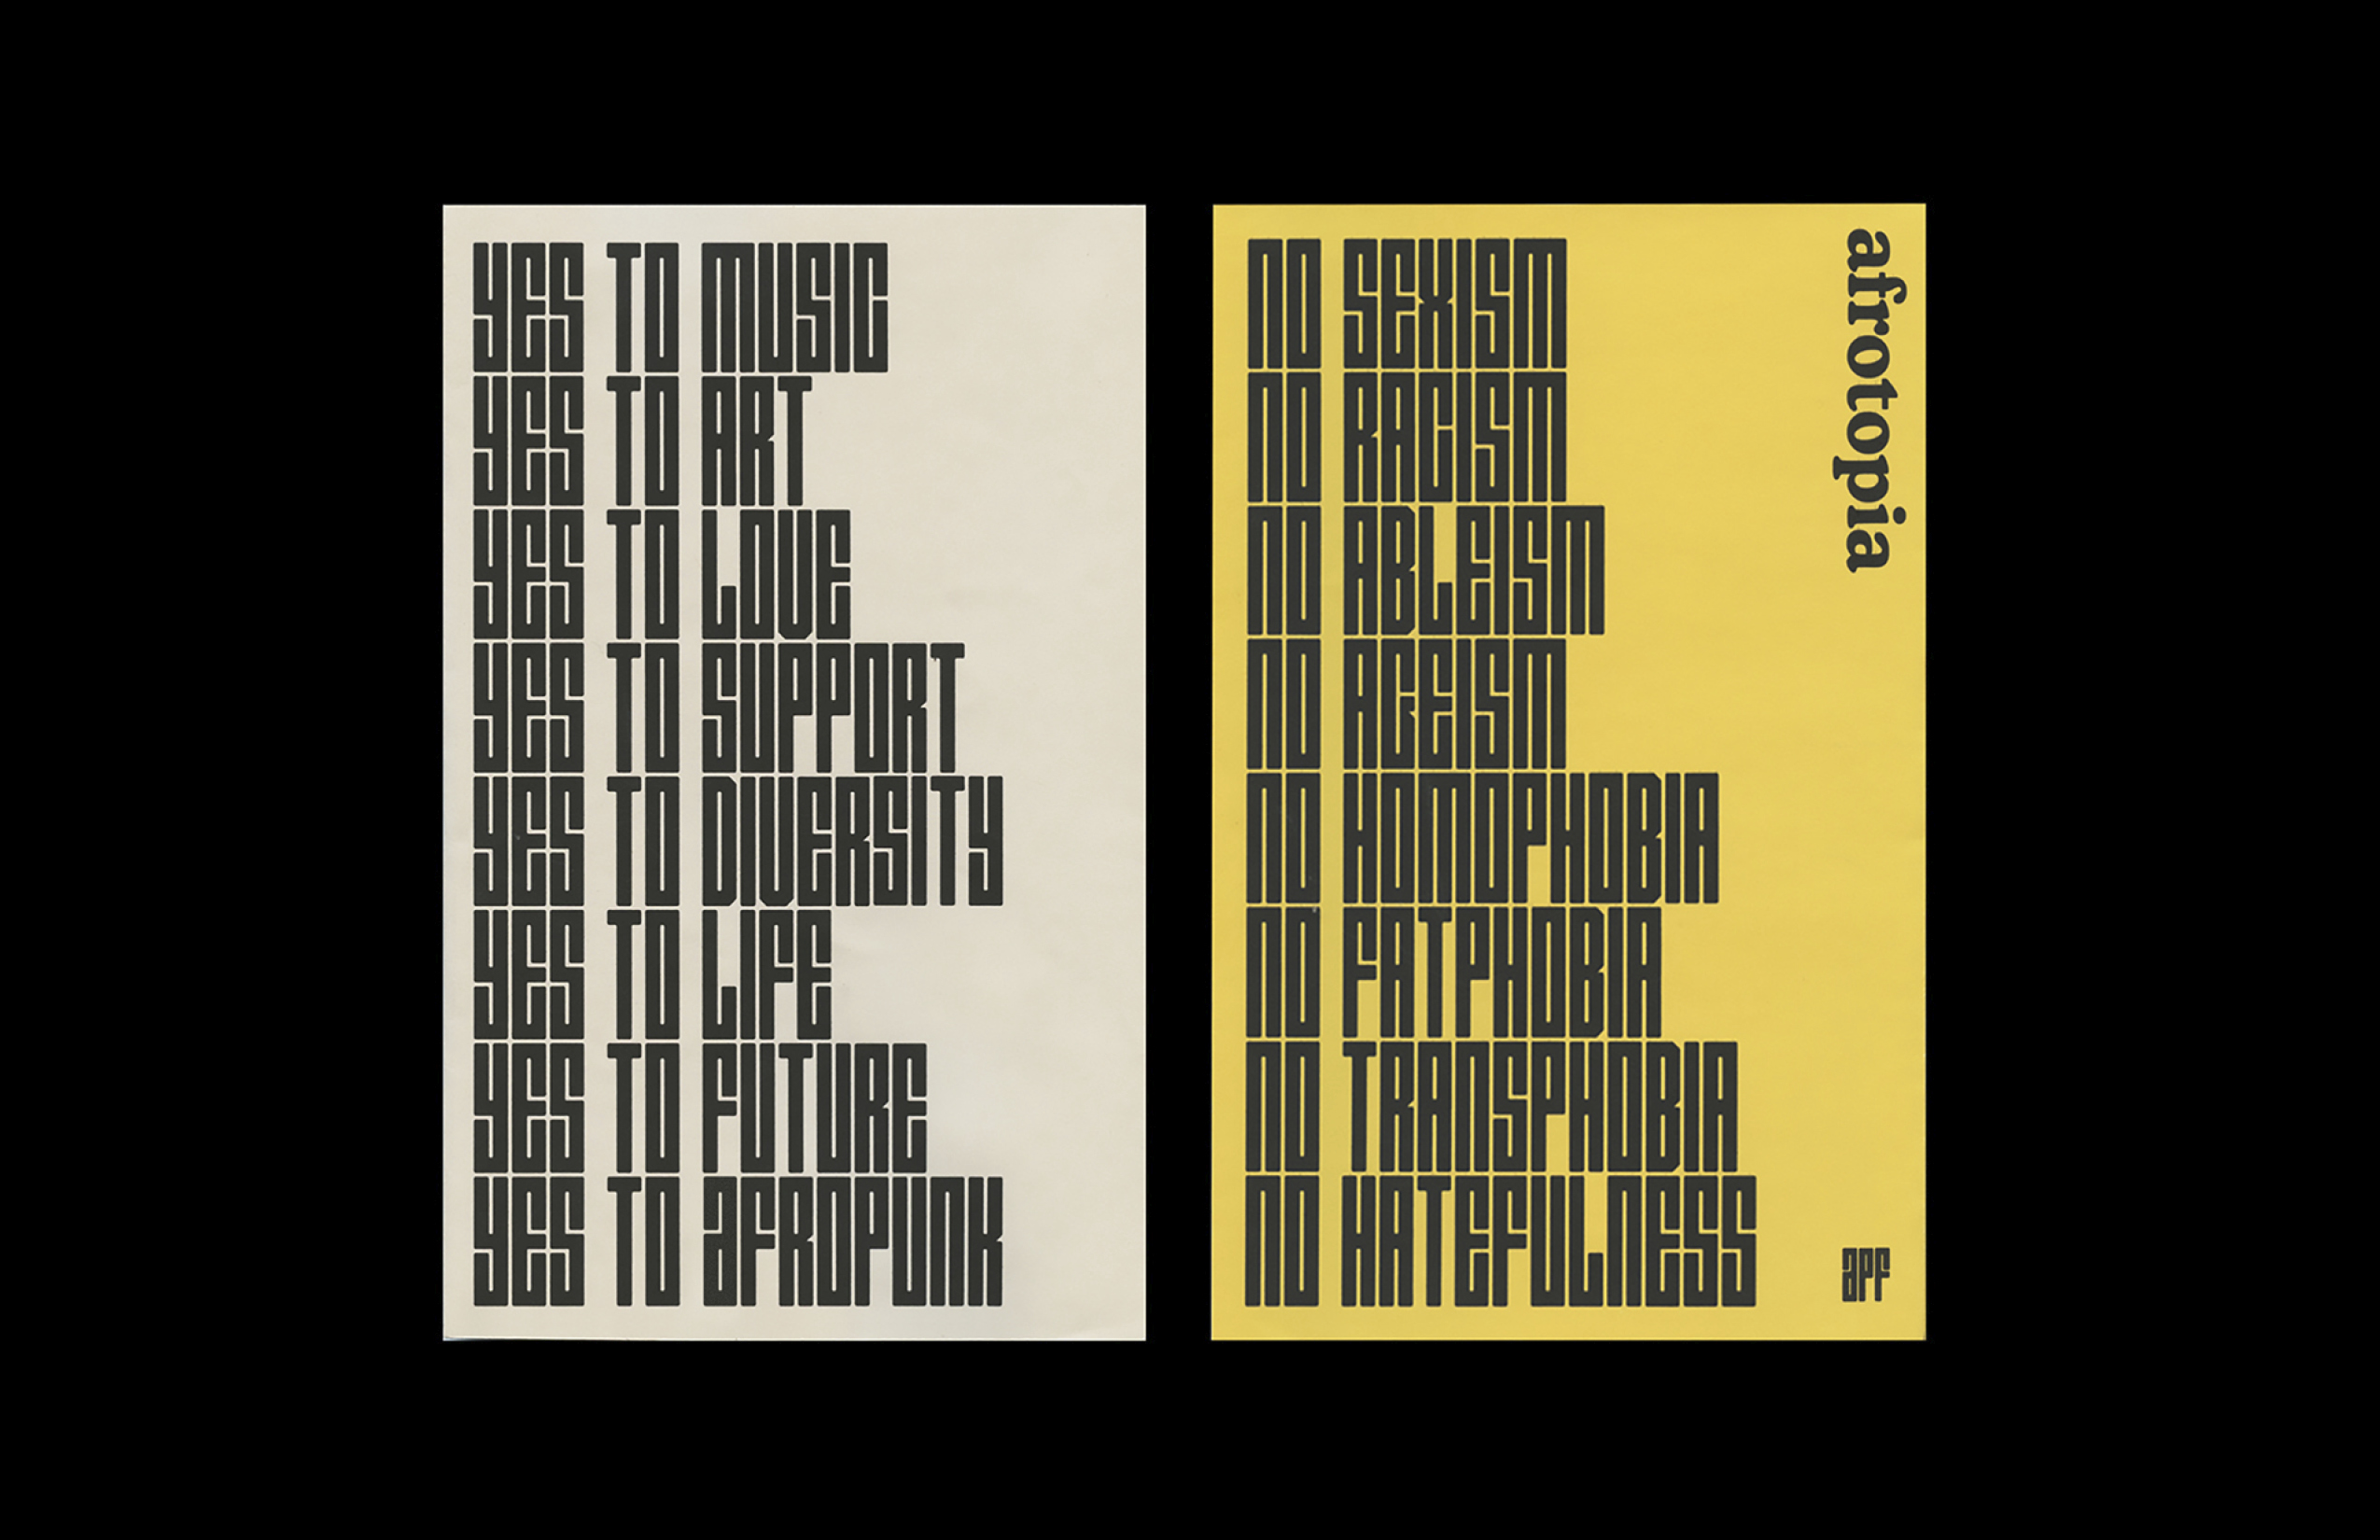 Afropunk Festival (fictional) - Fonts In Use